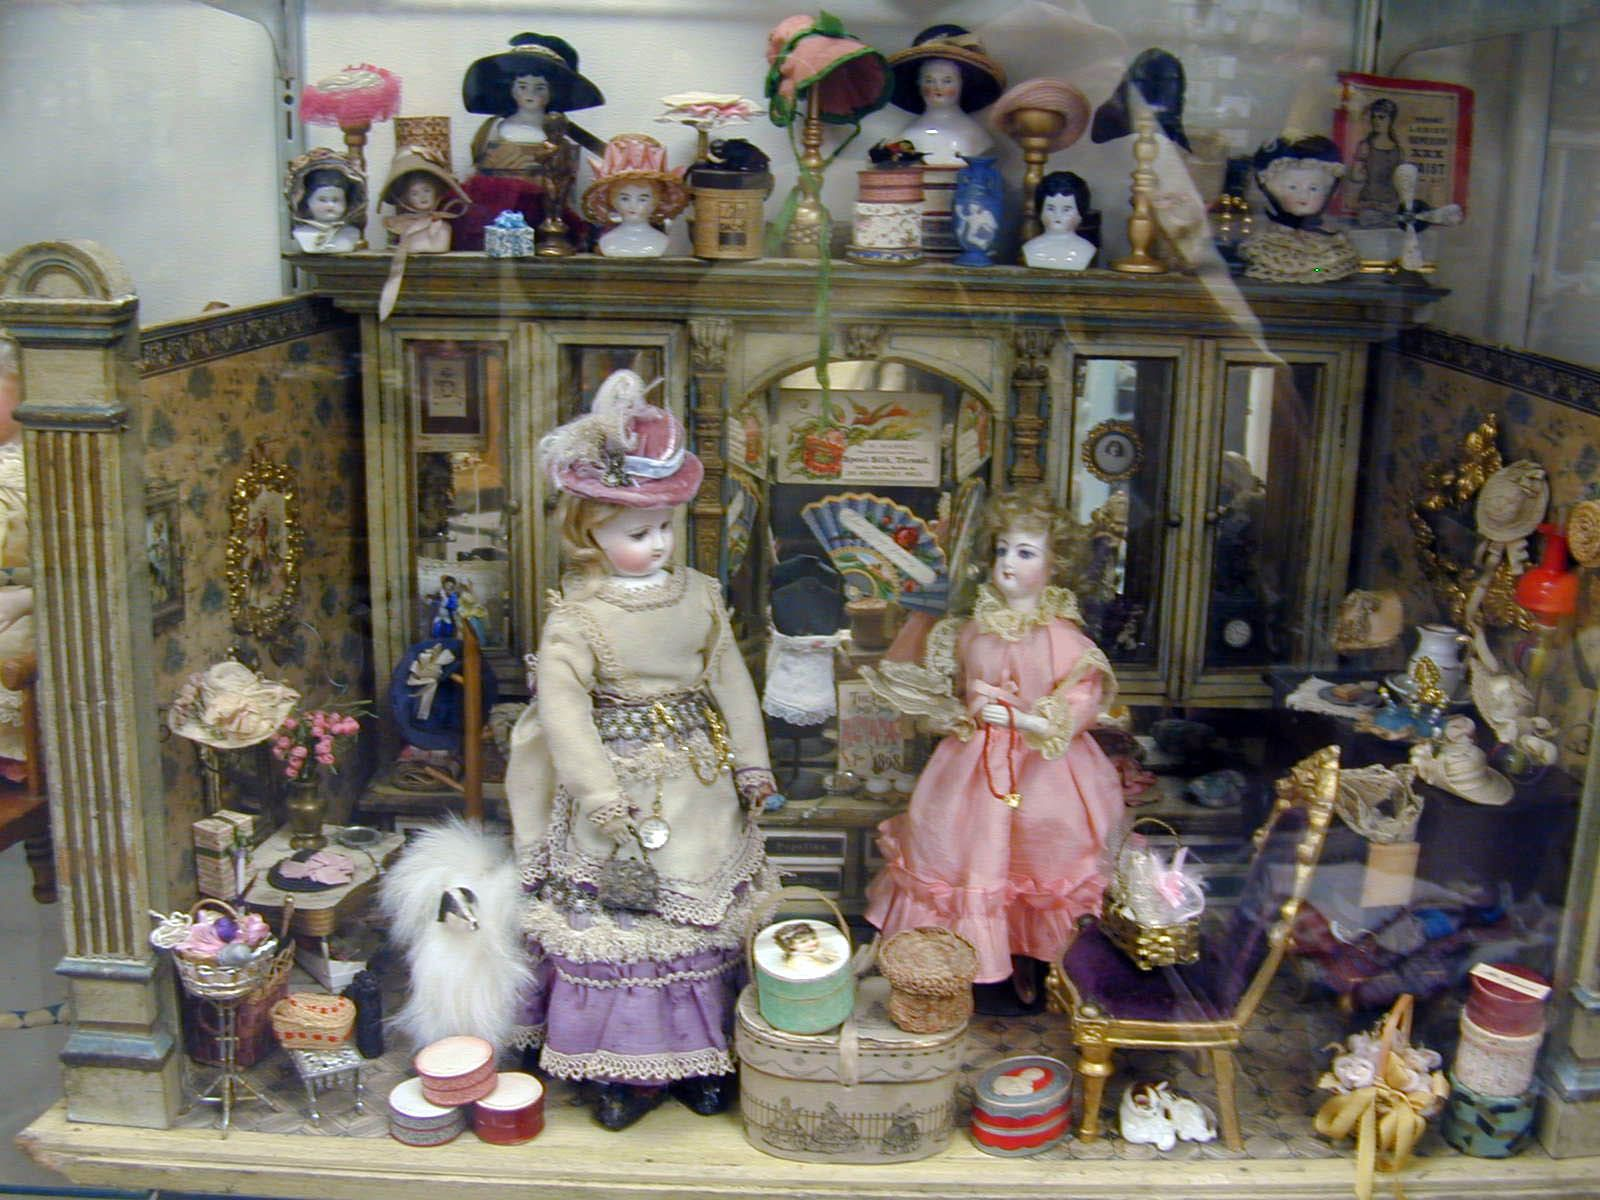 Dollhouse Exhibition And Toy: Antique Dolls Display, Special Joys Doll Museum, Coventry